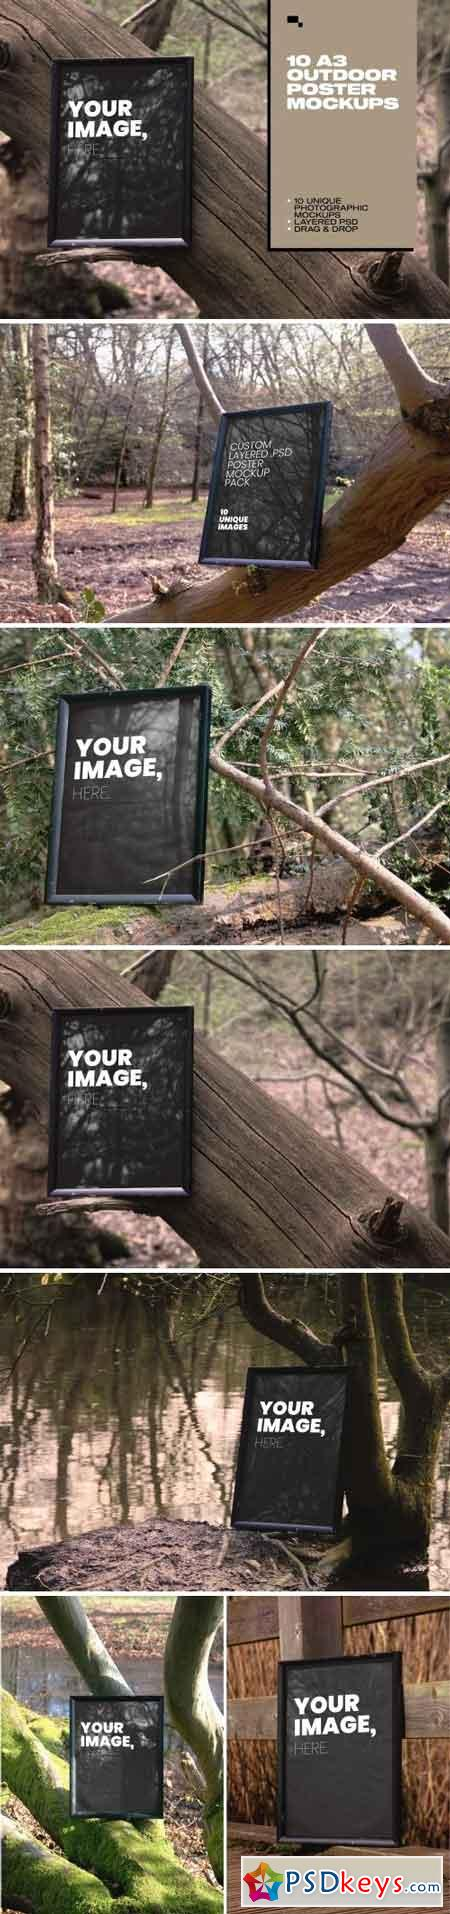 Forest Frames - 10 Unique Mockups 2464064